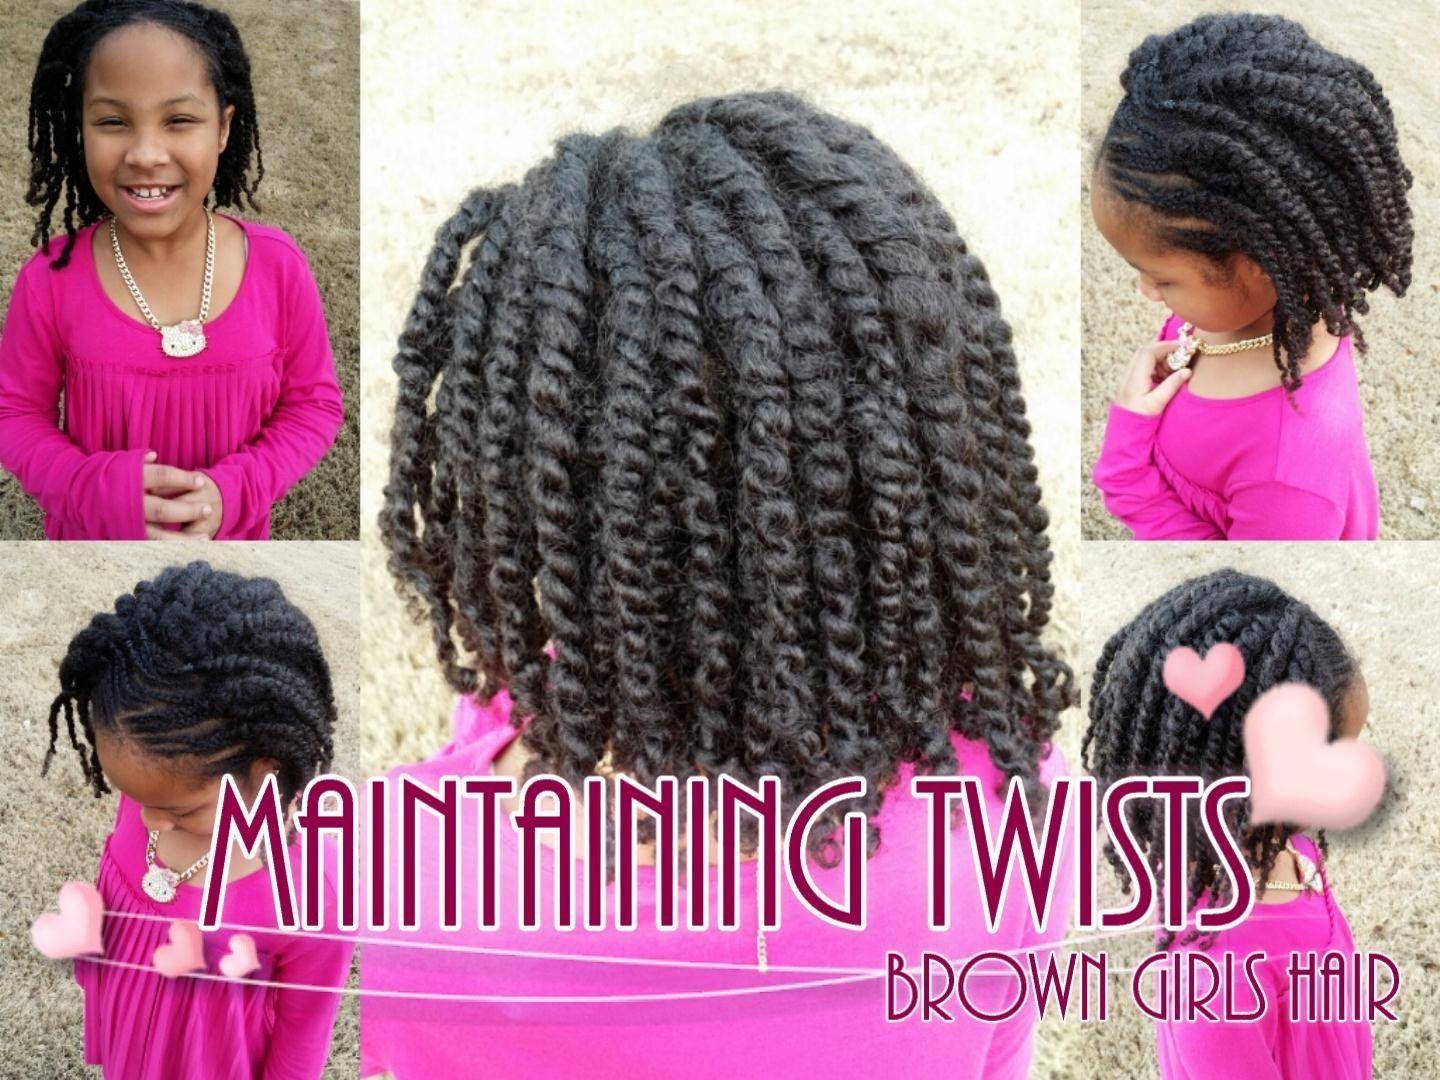 How To Maintain Twists on Natural Girls Hair | Natural Black Hair ...